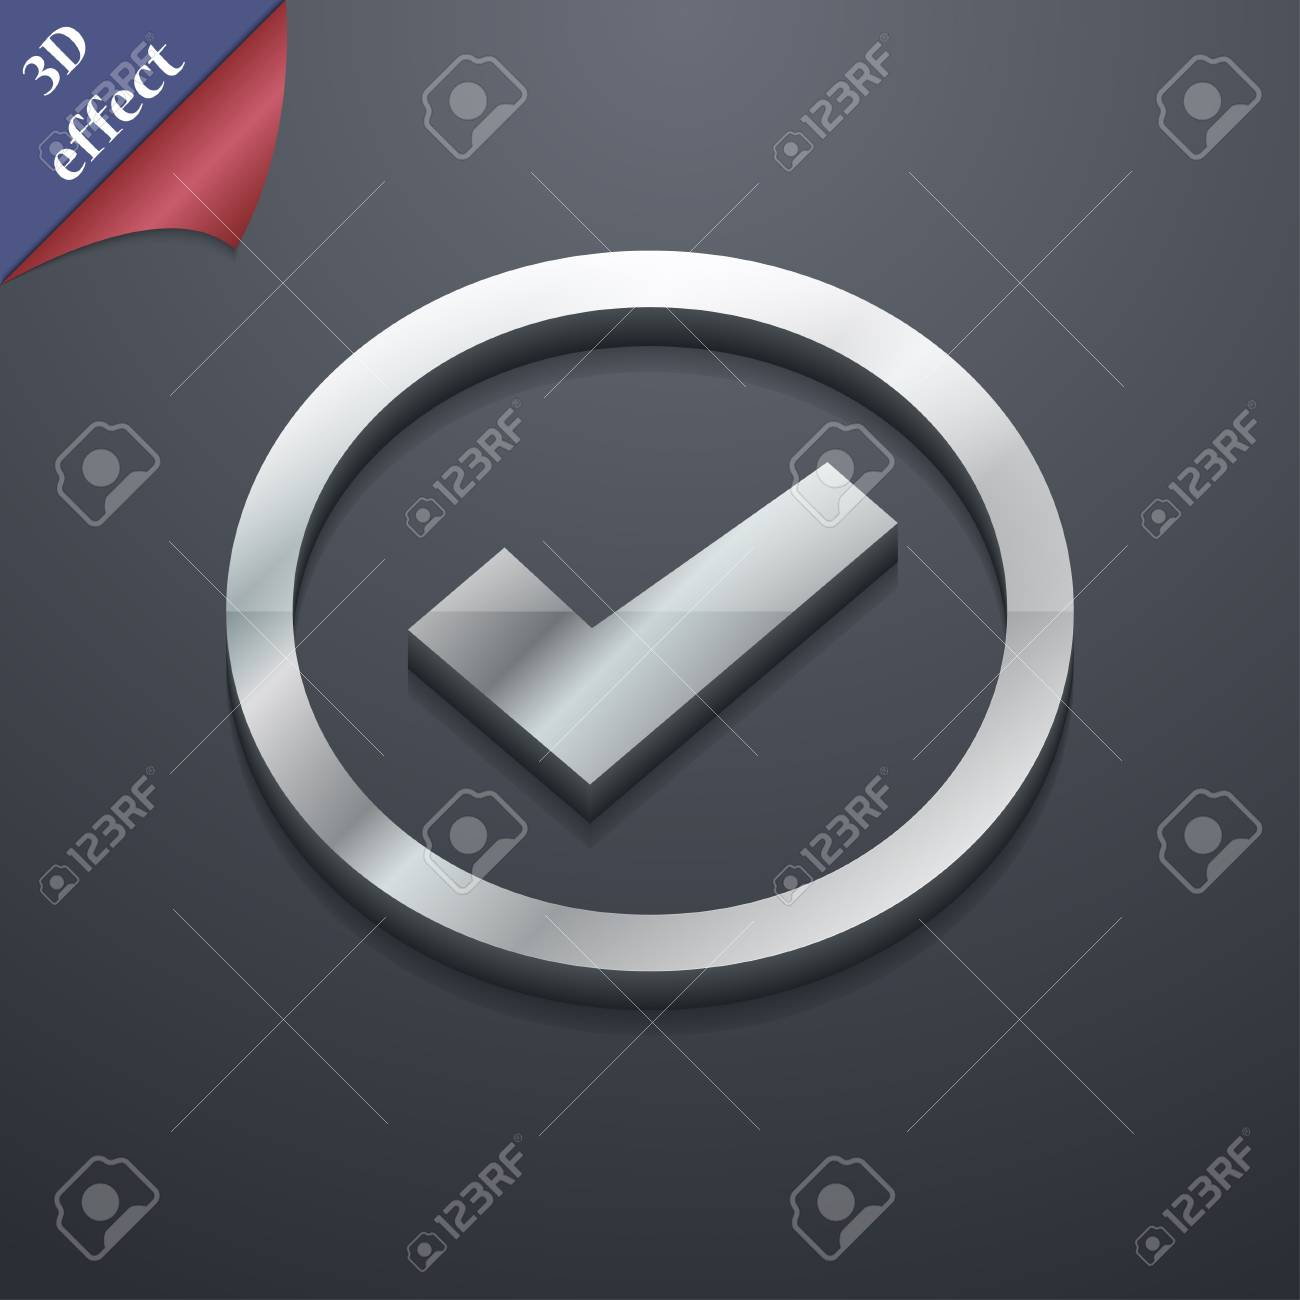 Check Mark Icon Symbol 3d Style Trendy Modern Design With Stock